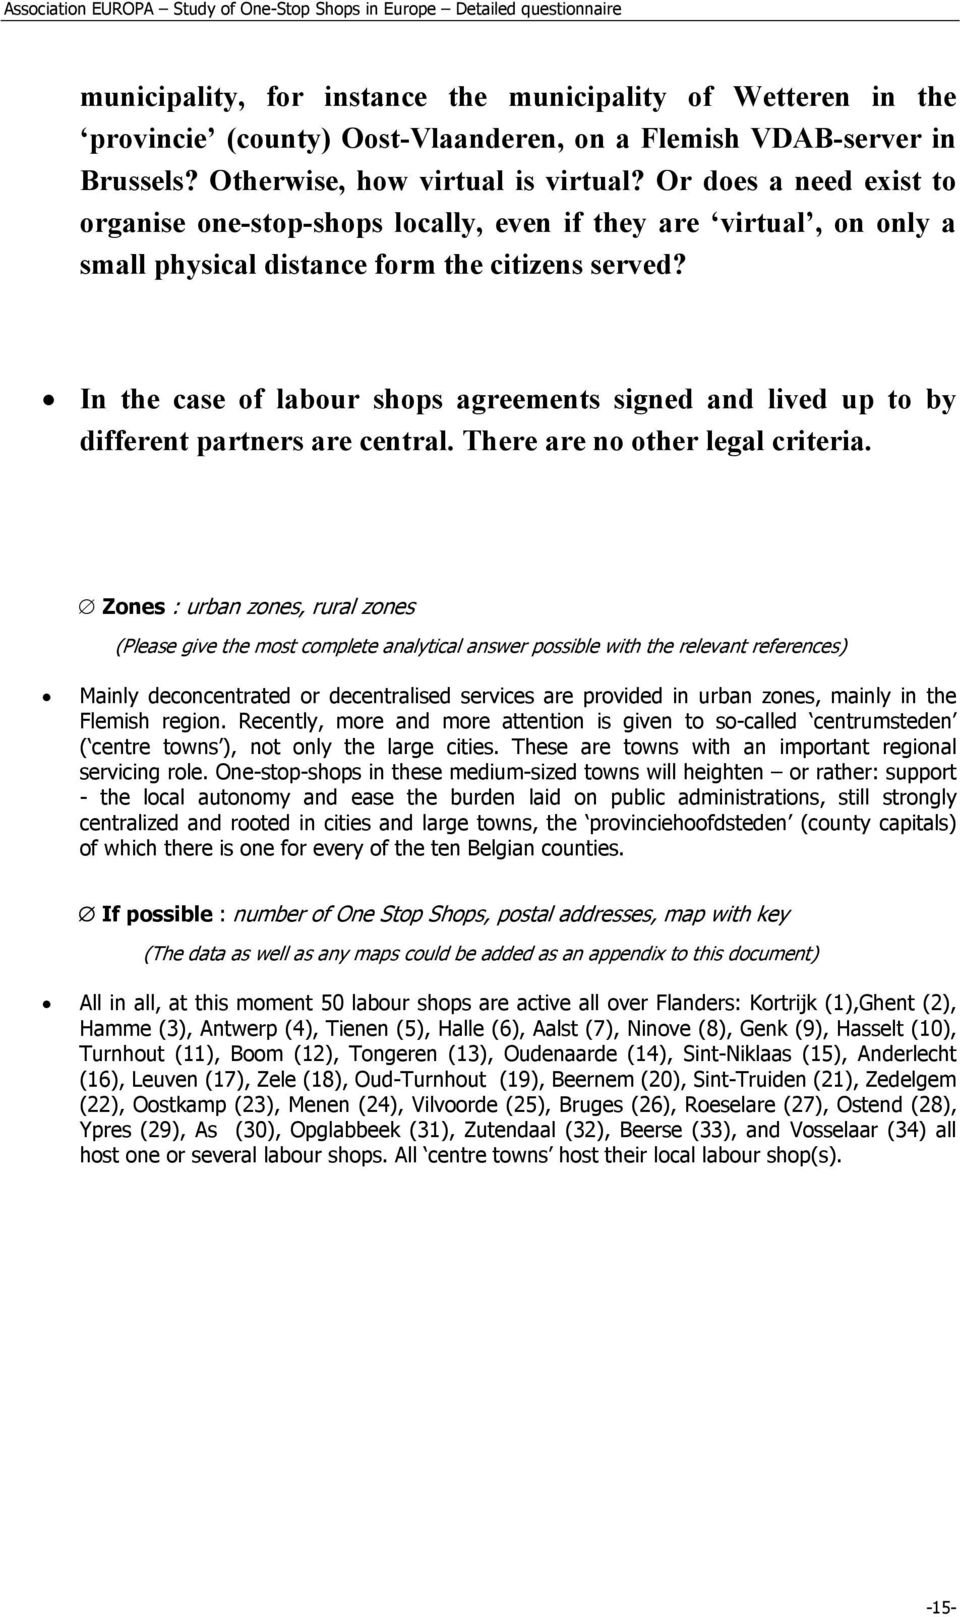 In the case of labour shops agreements signed and lived up to by different partners are central. There are no other legal criteria.